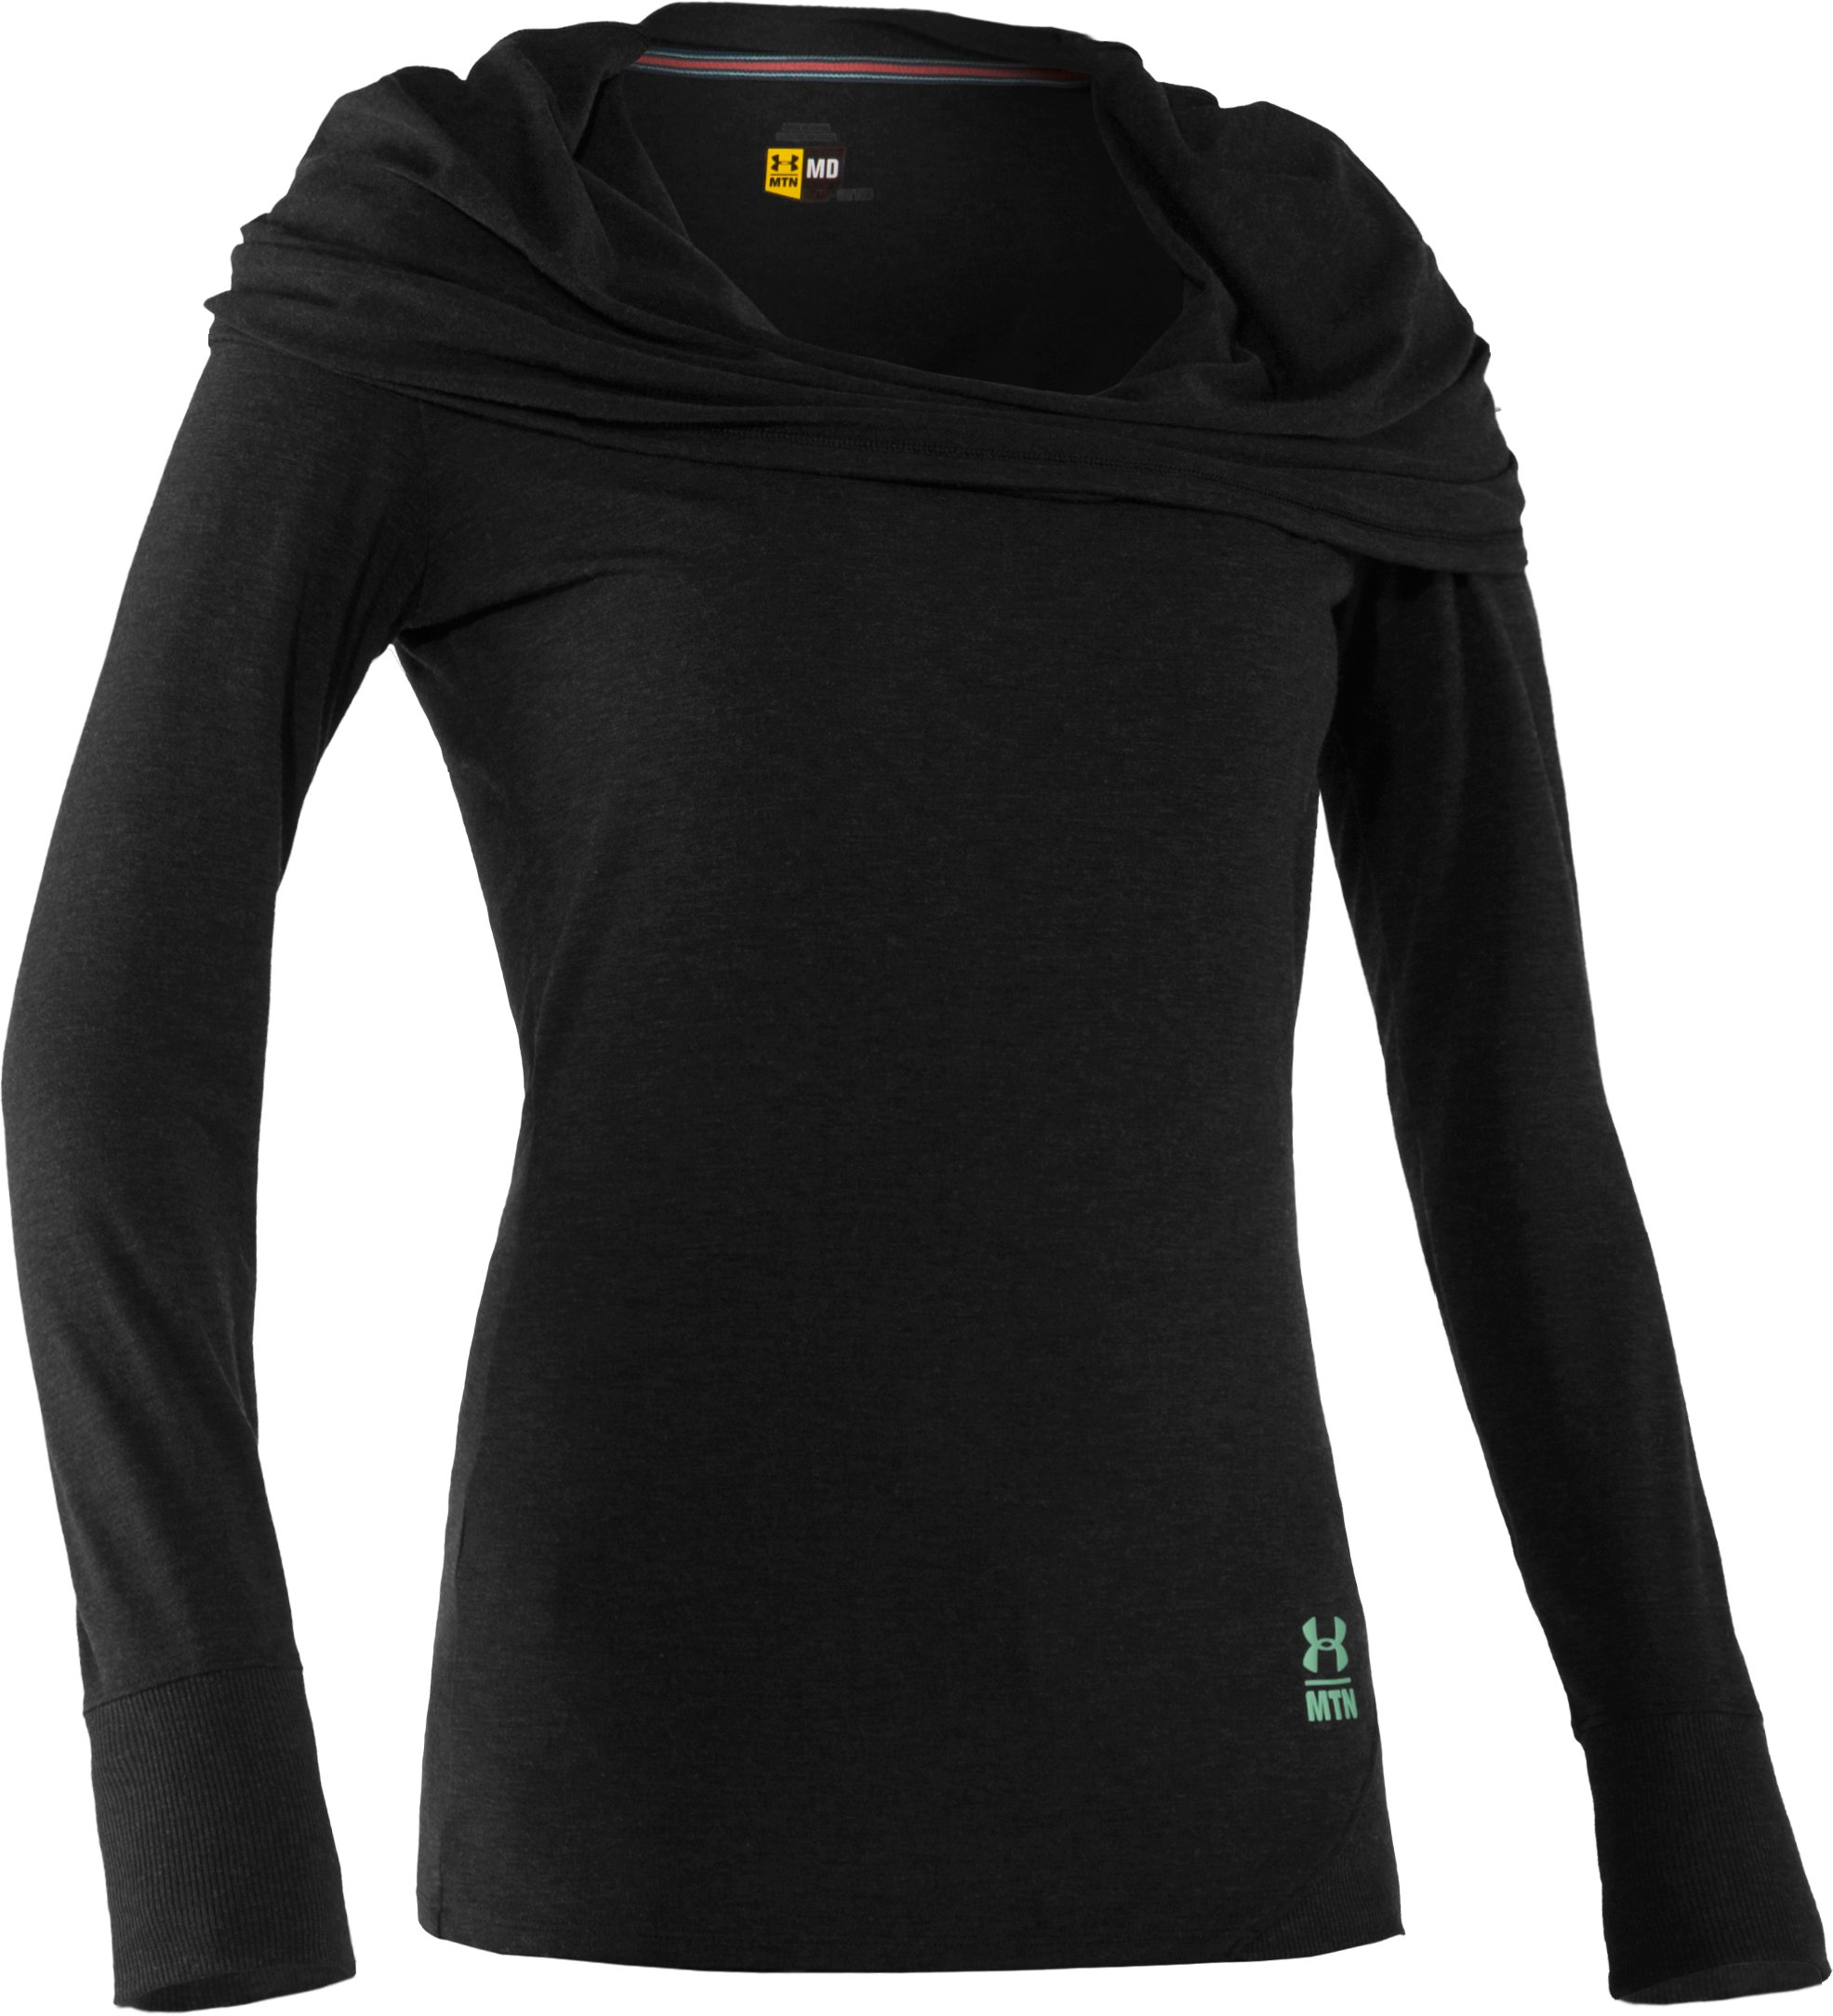 Women's Sheep's Clothing Hoodie, Black